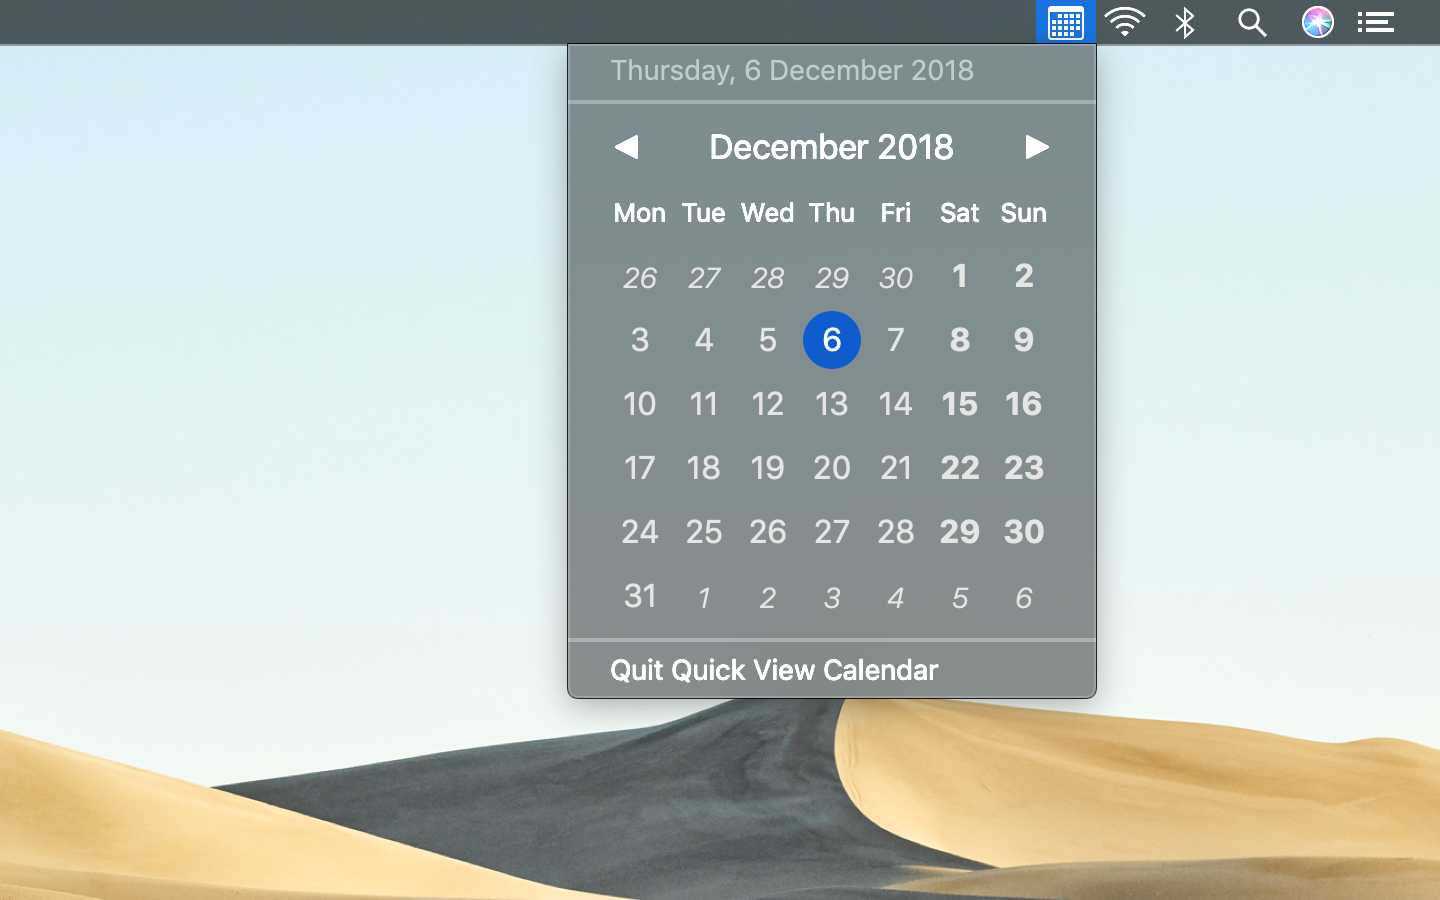 Quick View Calendar adapts to dark mode